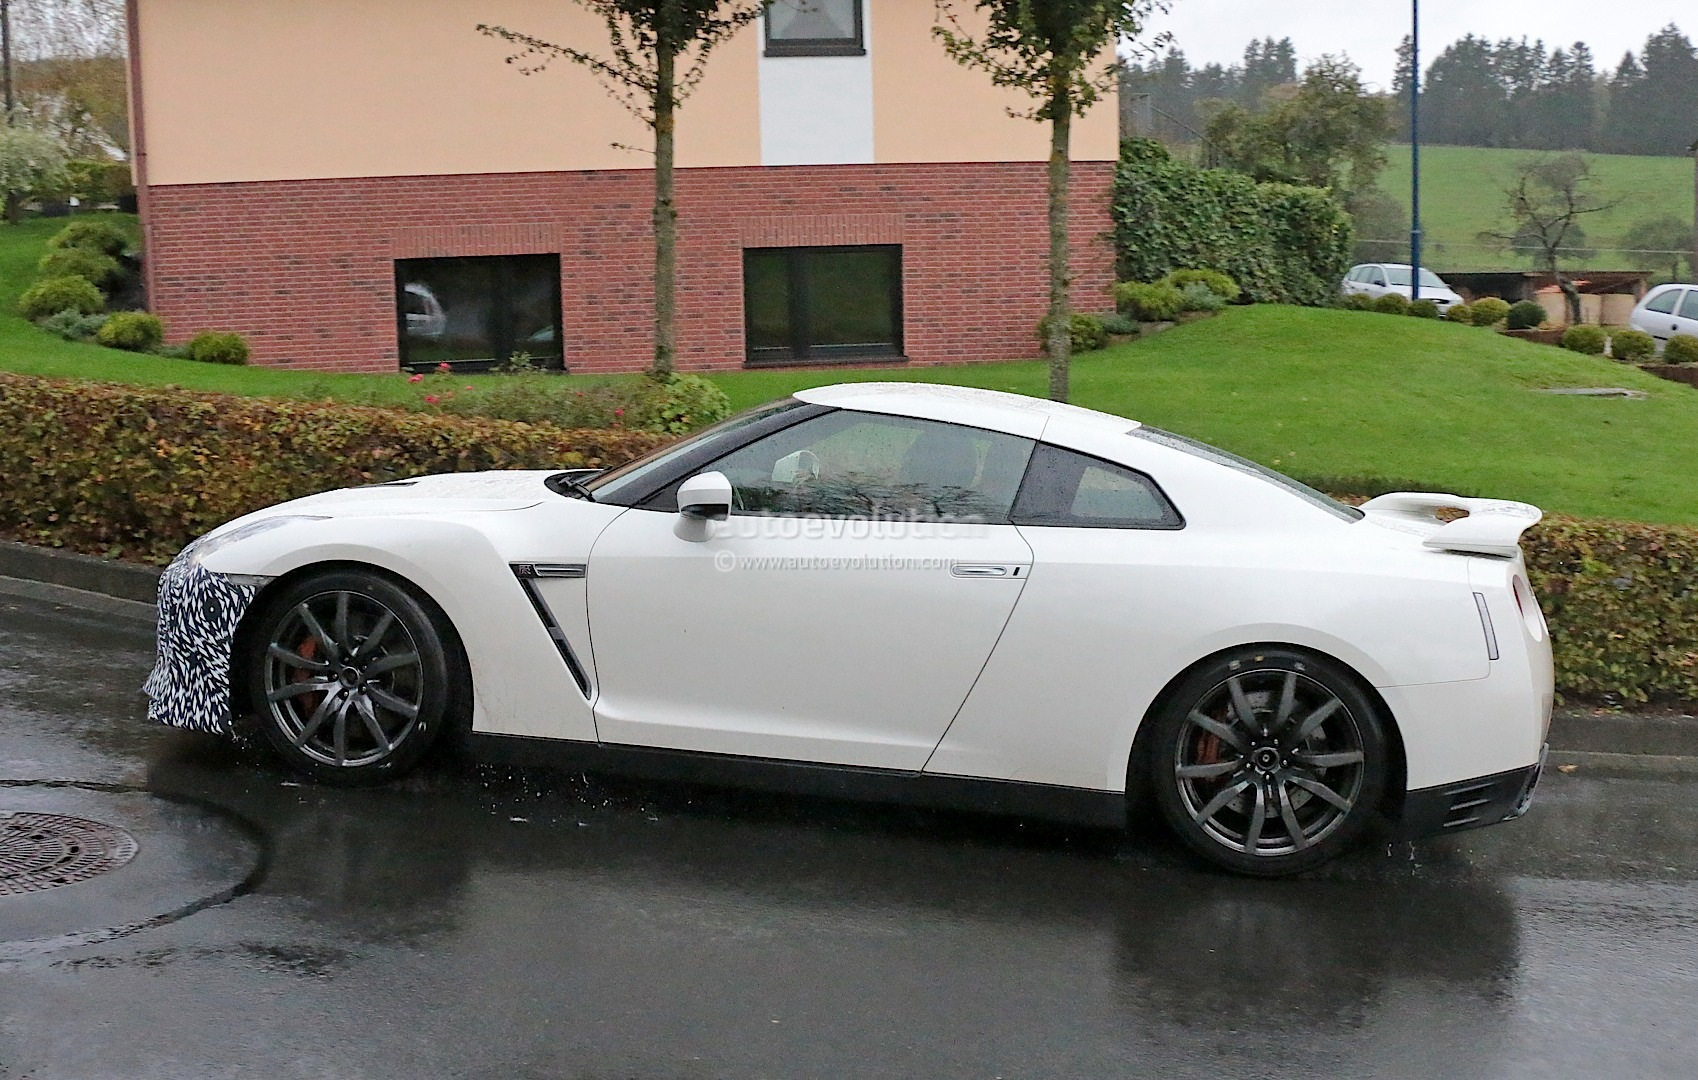 http://s1.cdn.autoevolution.com/images/news/gallery/nissan-spied-testing-last-facelift-for-current-gt-r-generation_5.jpg